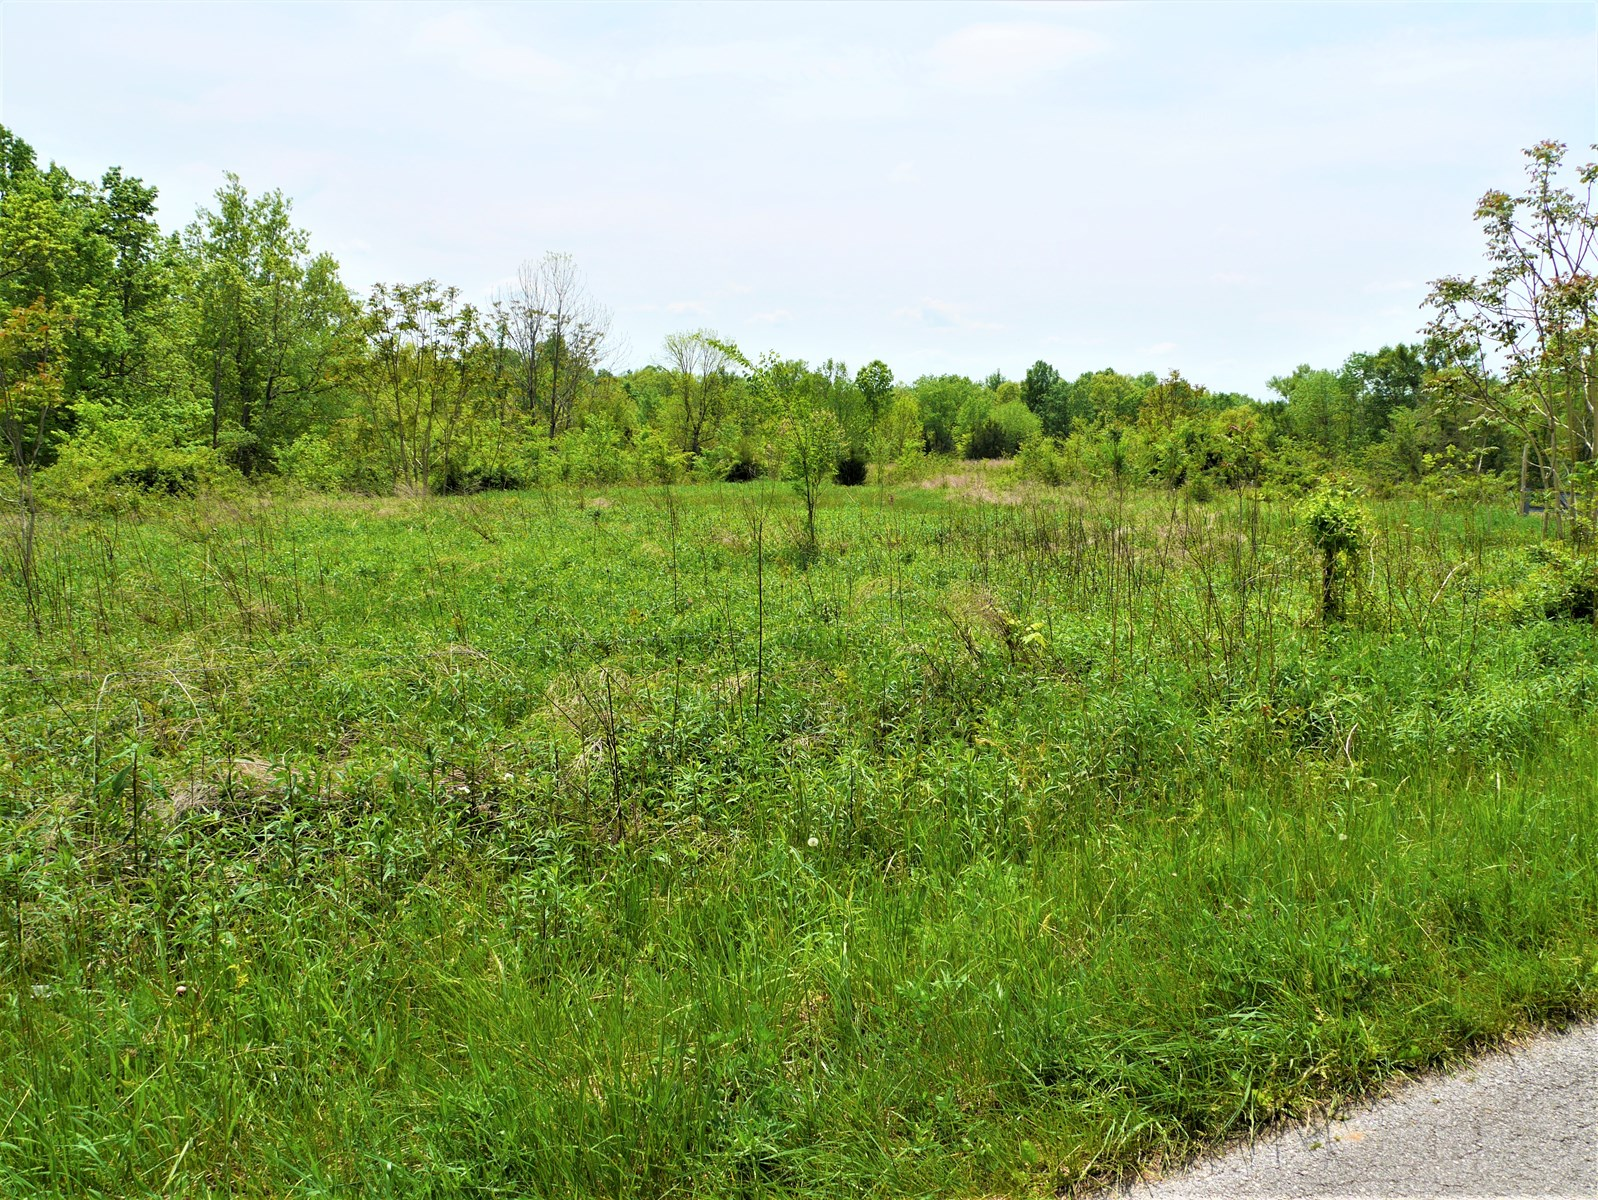 Hunting, Level Building Site, Pasture & Woods, Utilities